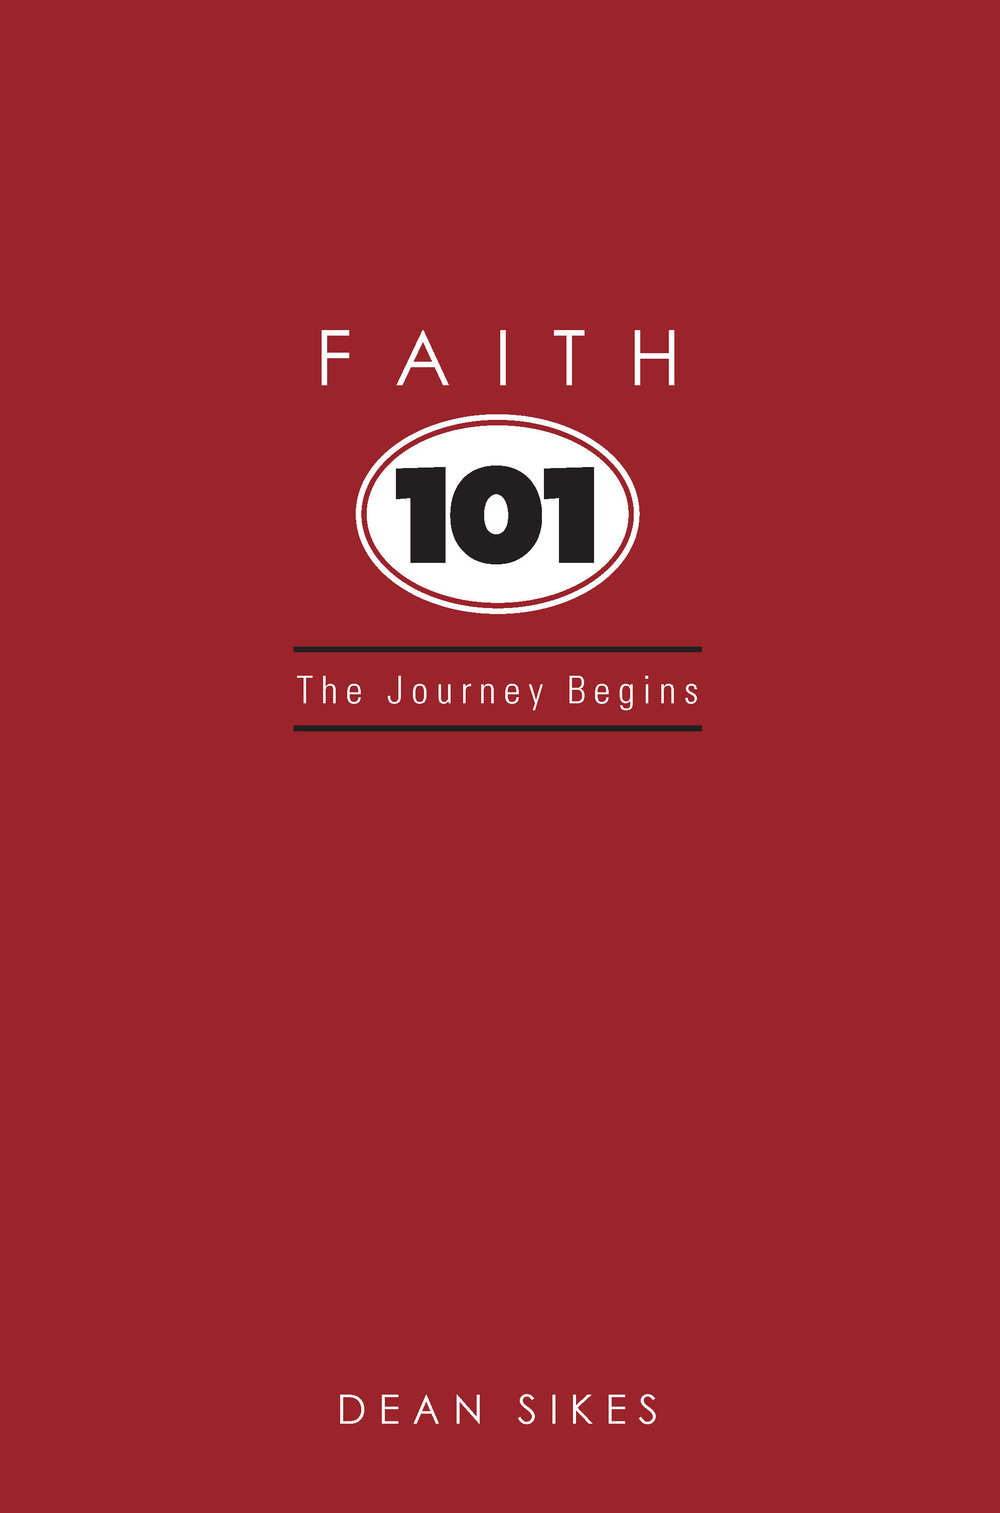 FAITH 101 (front cover).jpg